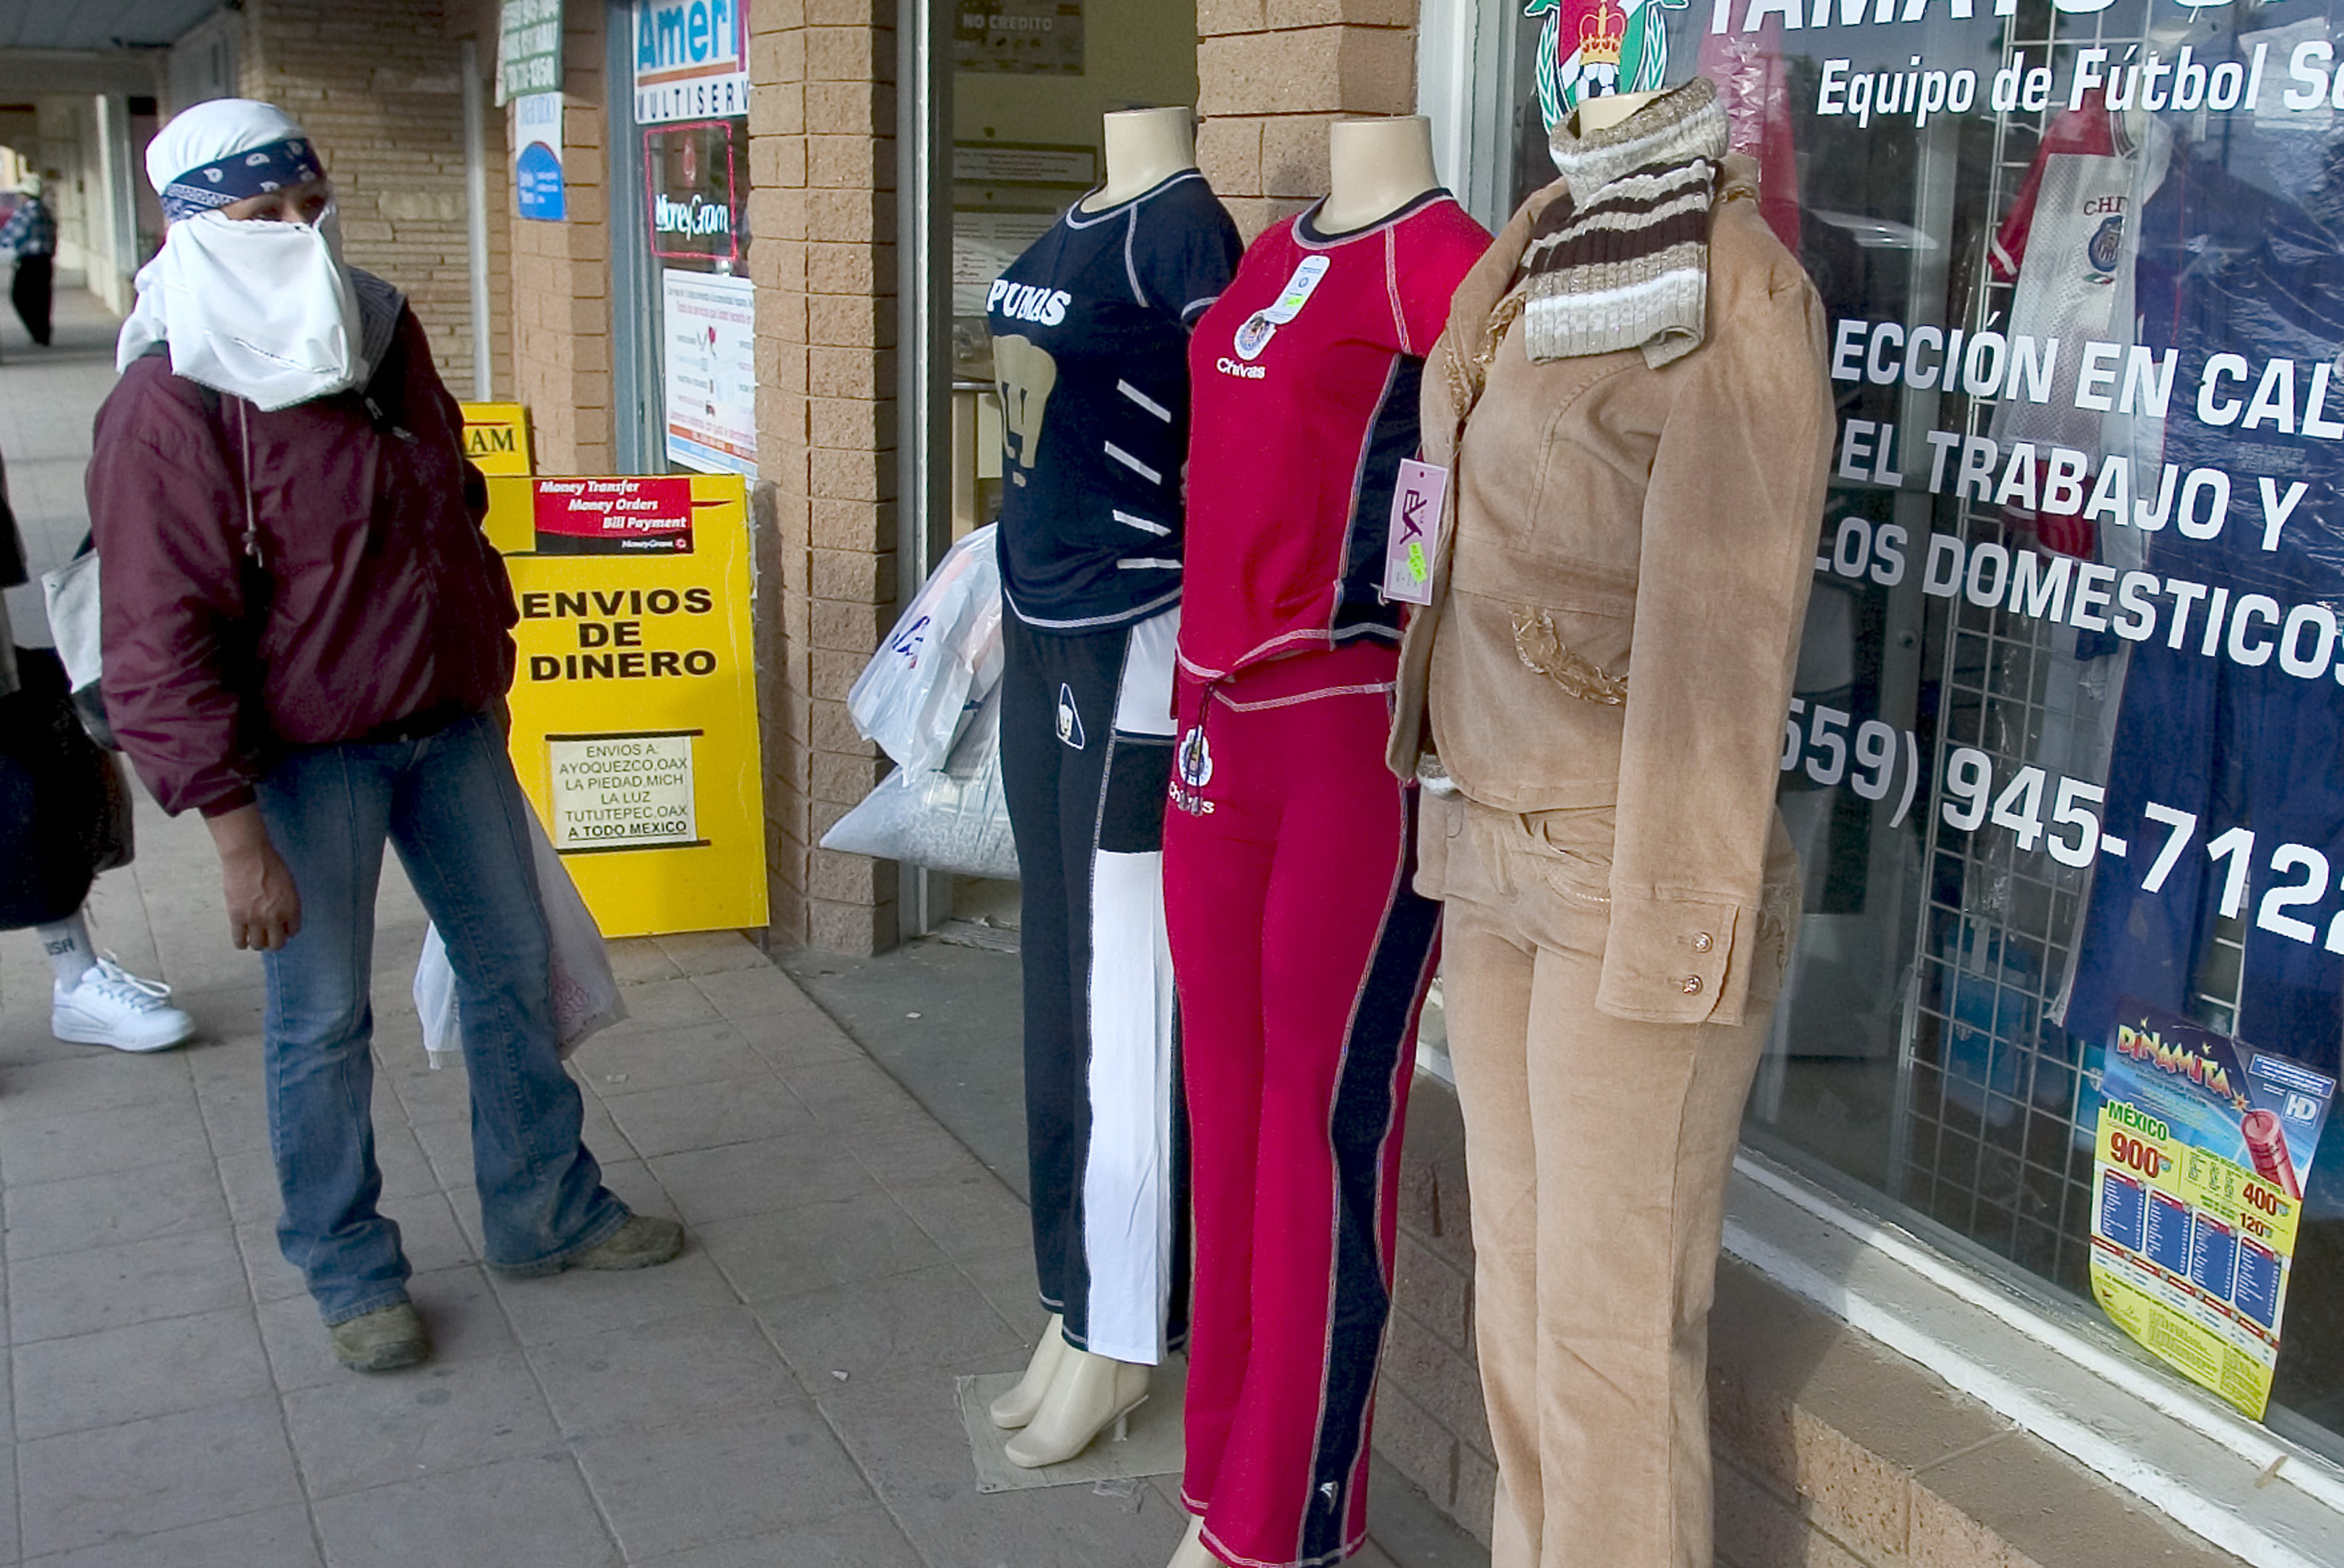 A woman in Huron looks at outfits at a clothing store. 2007